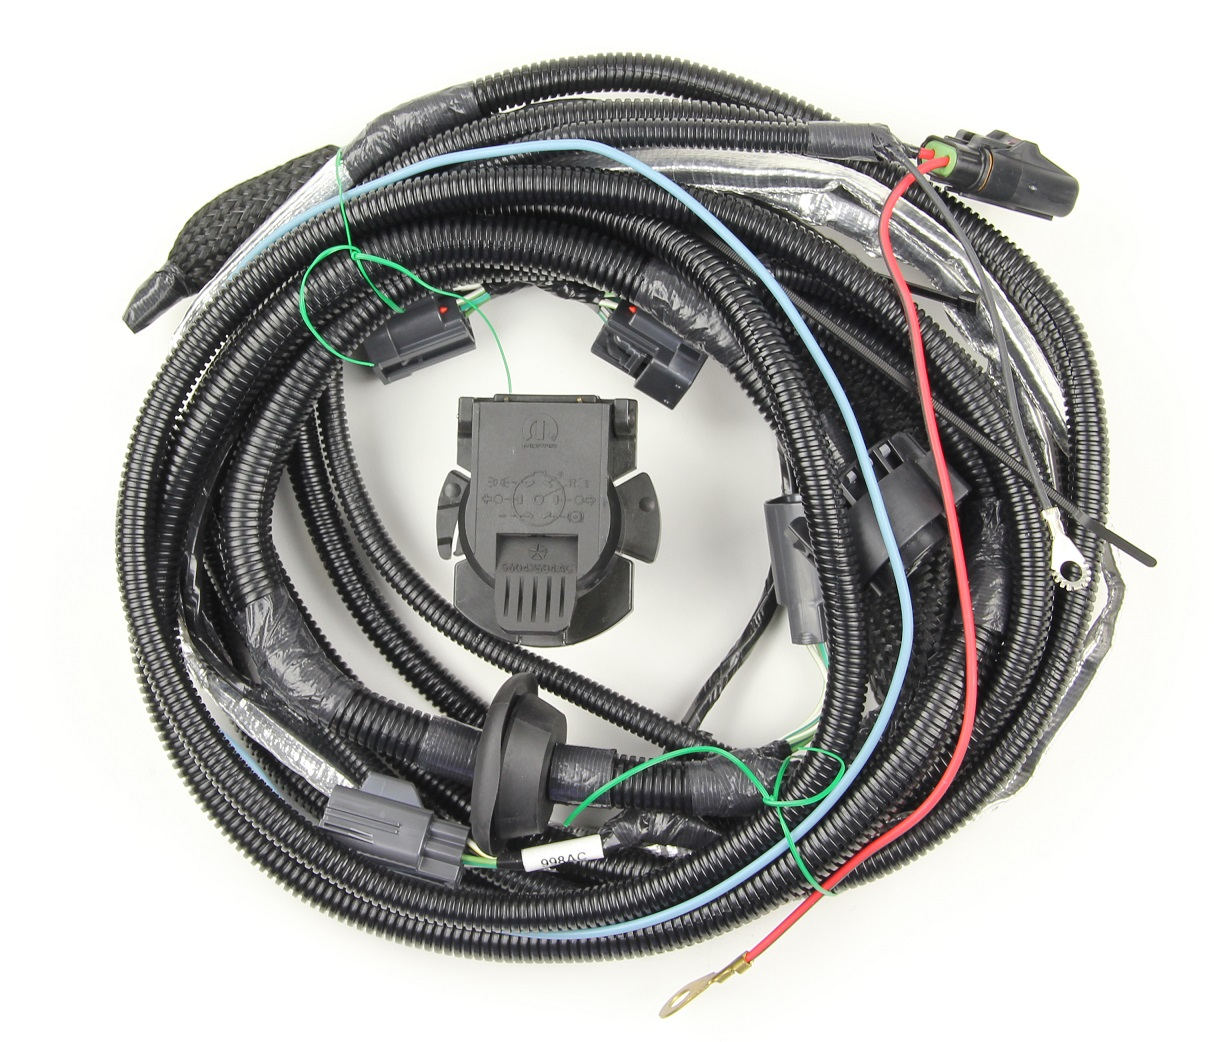 2008 Jeep Liberty Trailer Wiring Harness from s.yimg.com